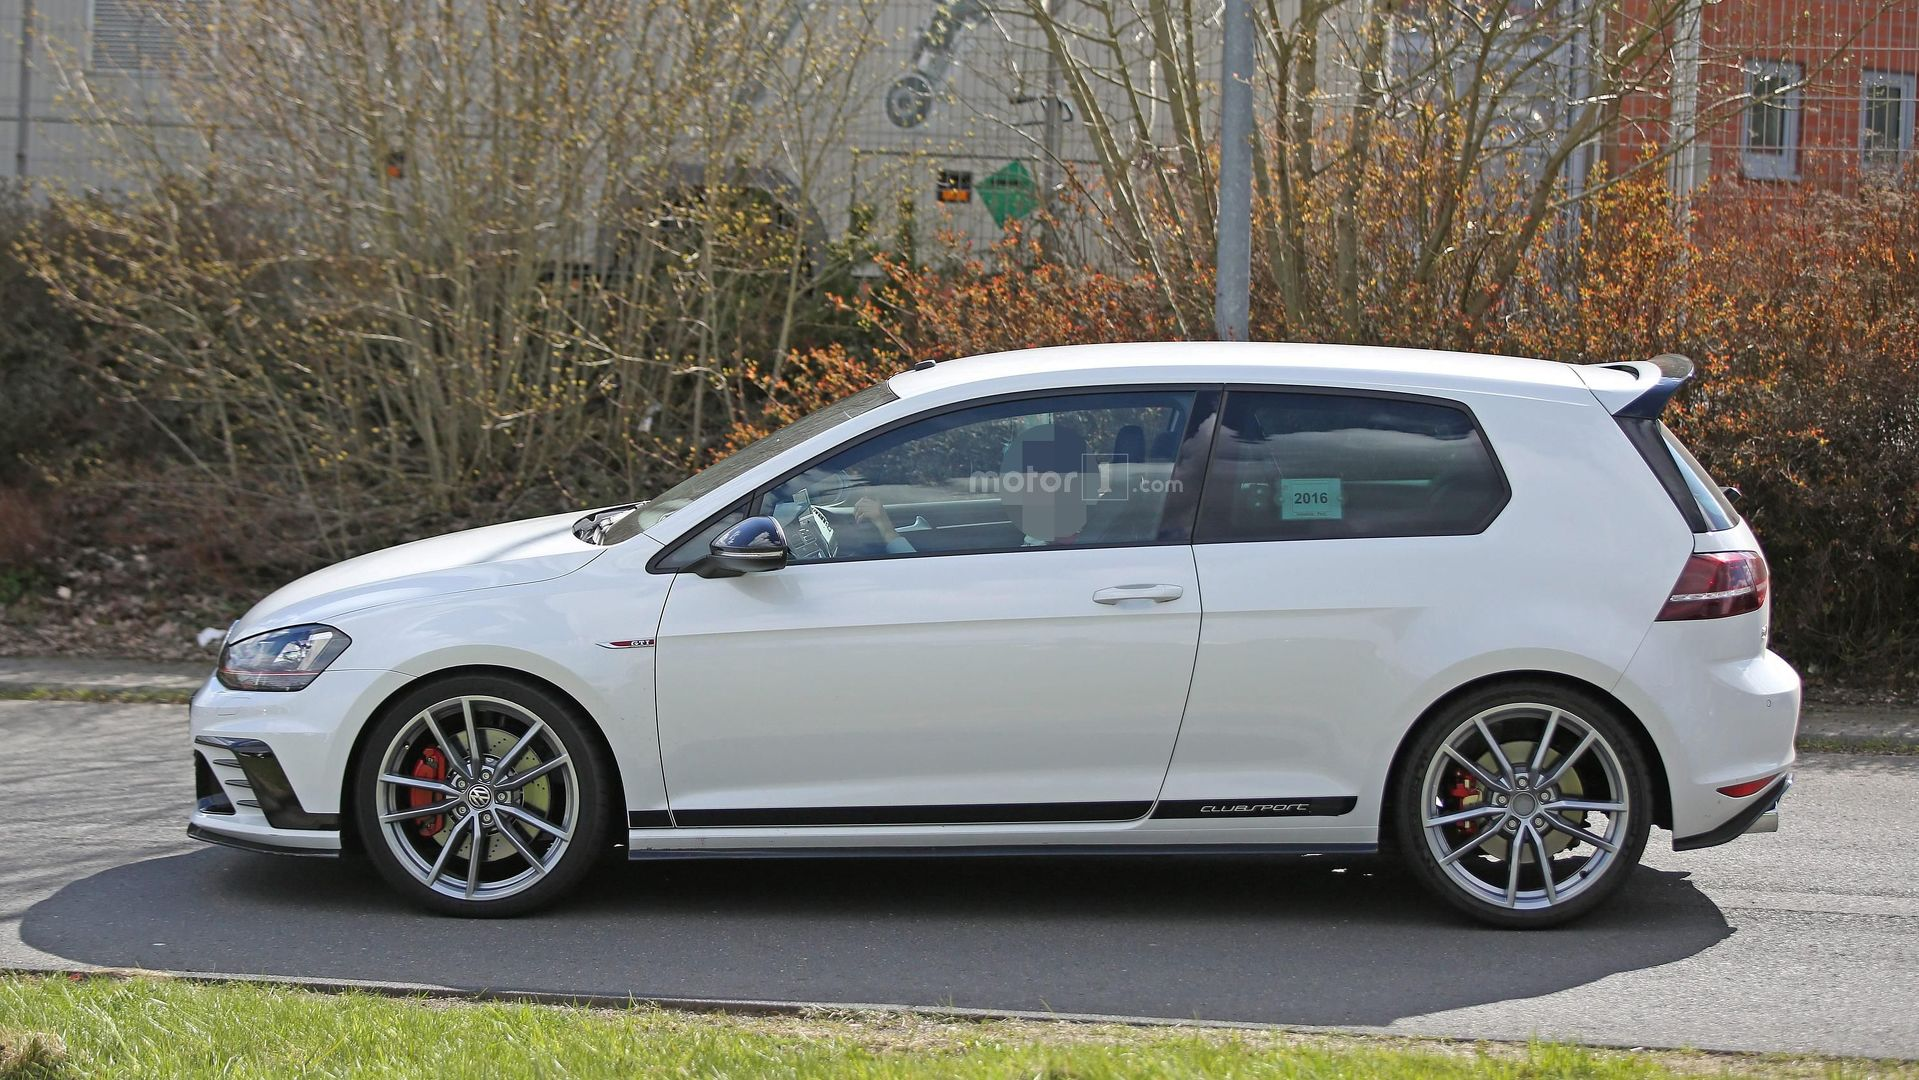 Volkswagen Golf Gti Clubsport S Spied For The First Time 34 Pics R Fuse Diagram